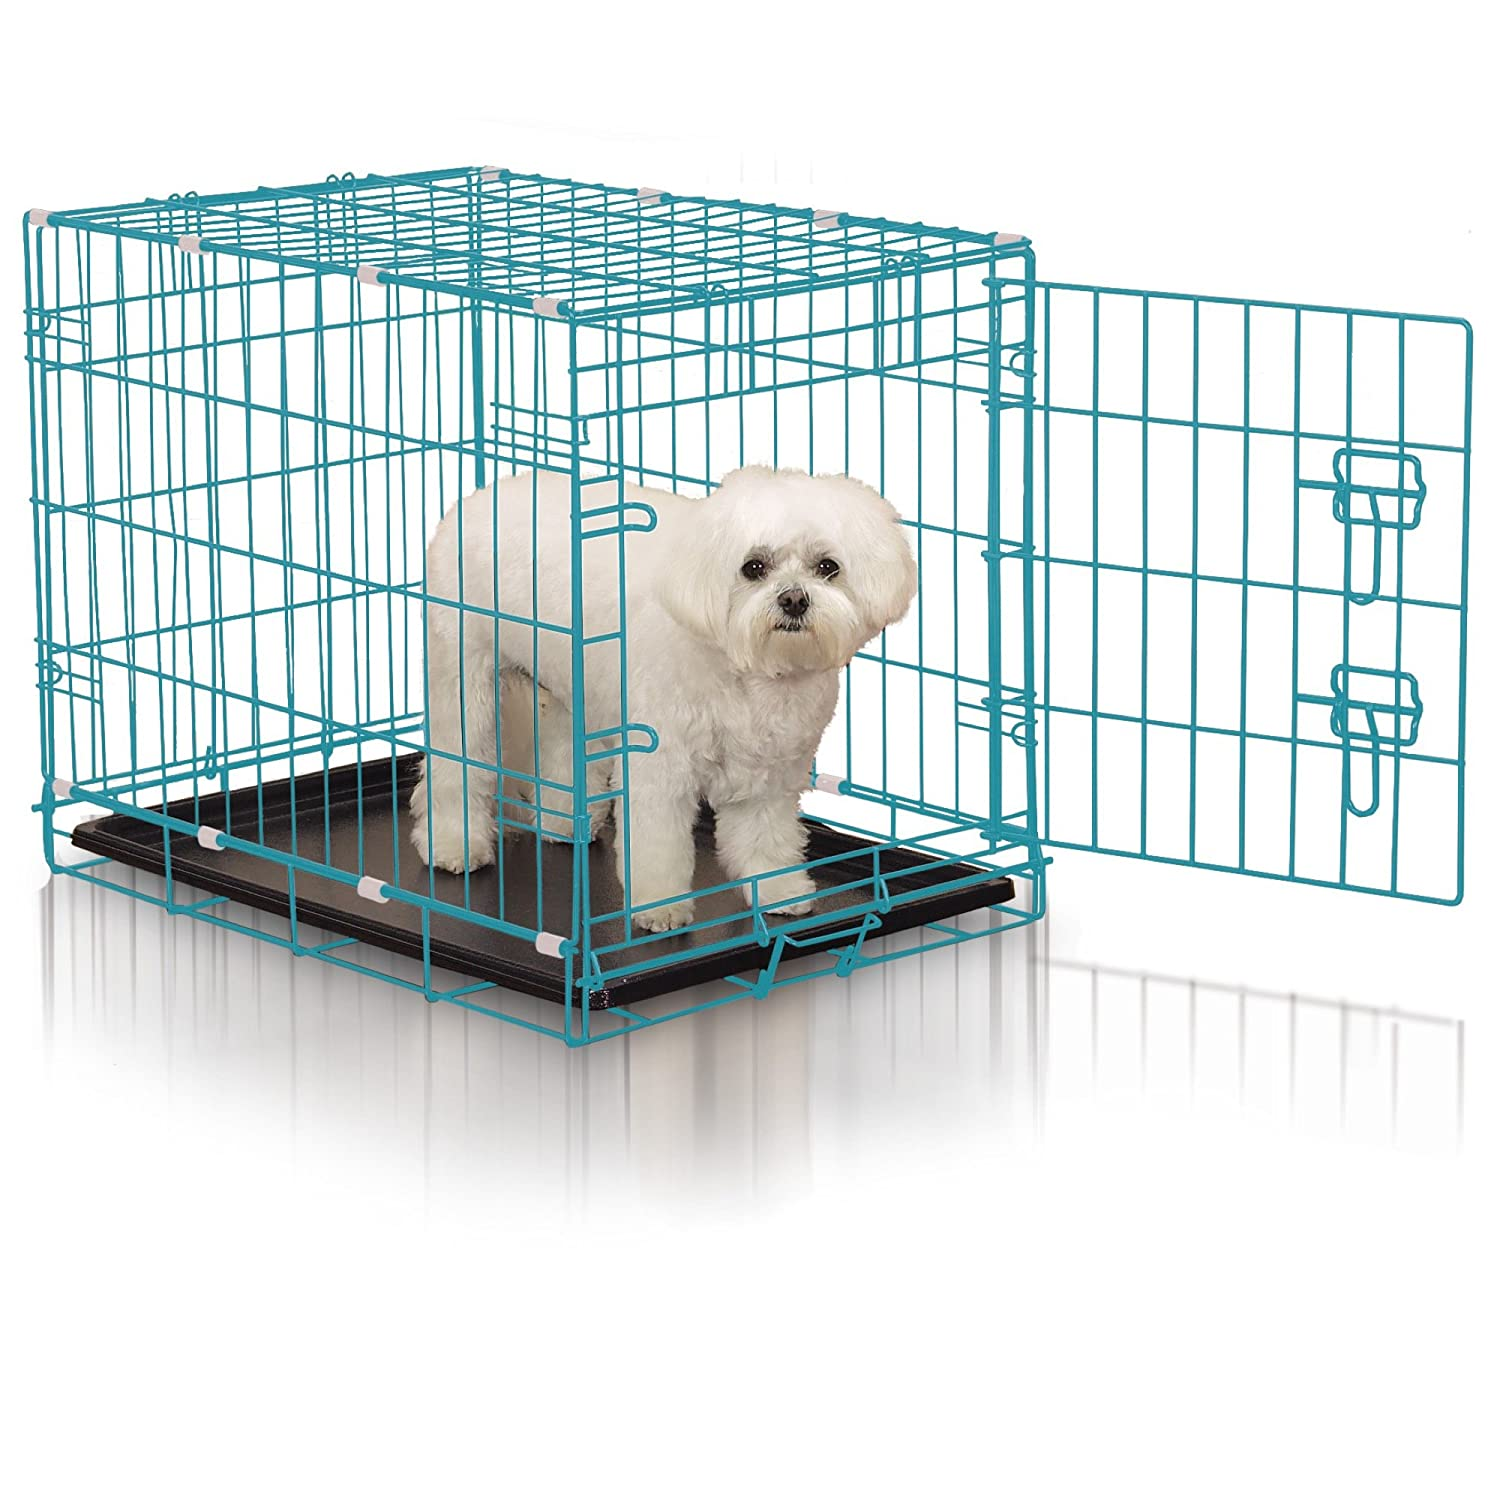 Amazon.com : Easy Dual Latching Dog Crate, Small, Teal : Pet Supplies